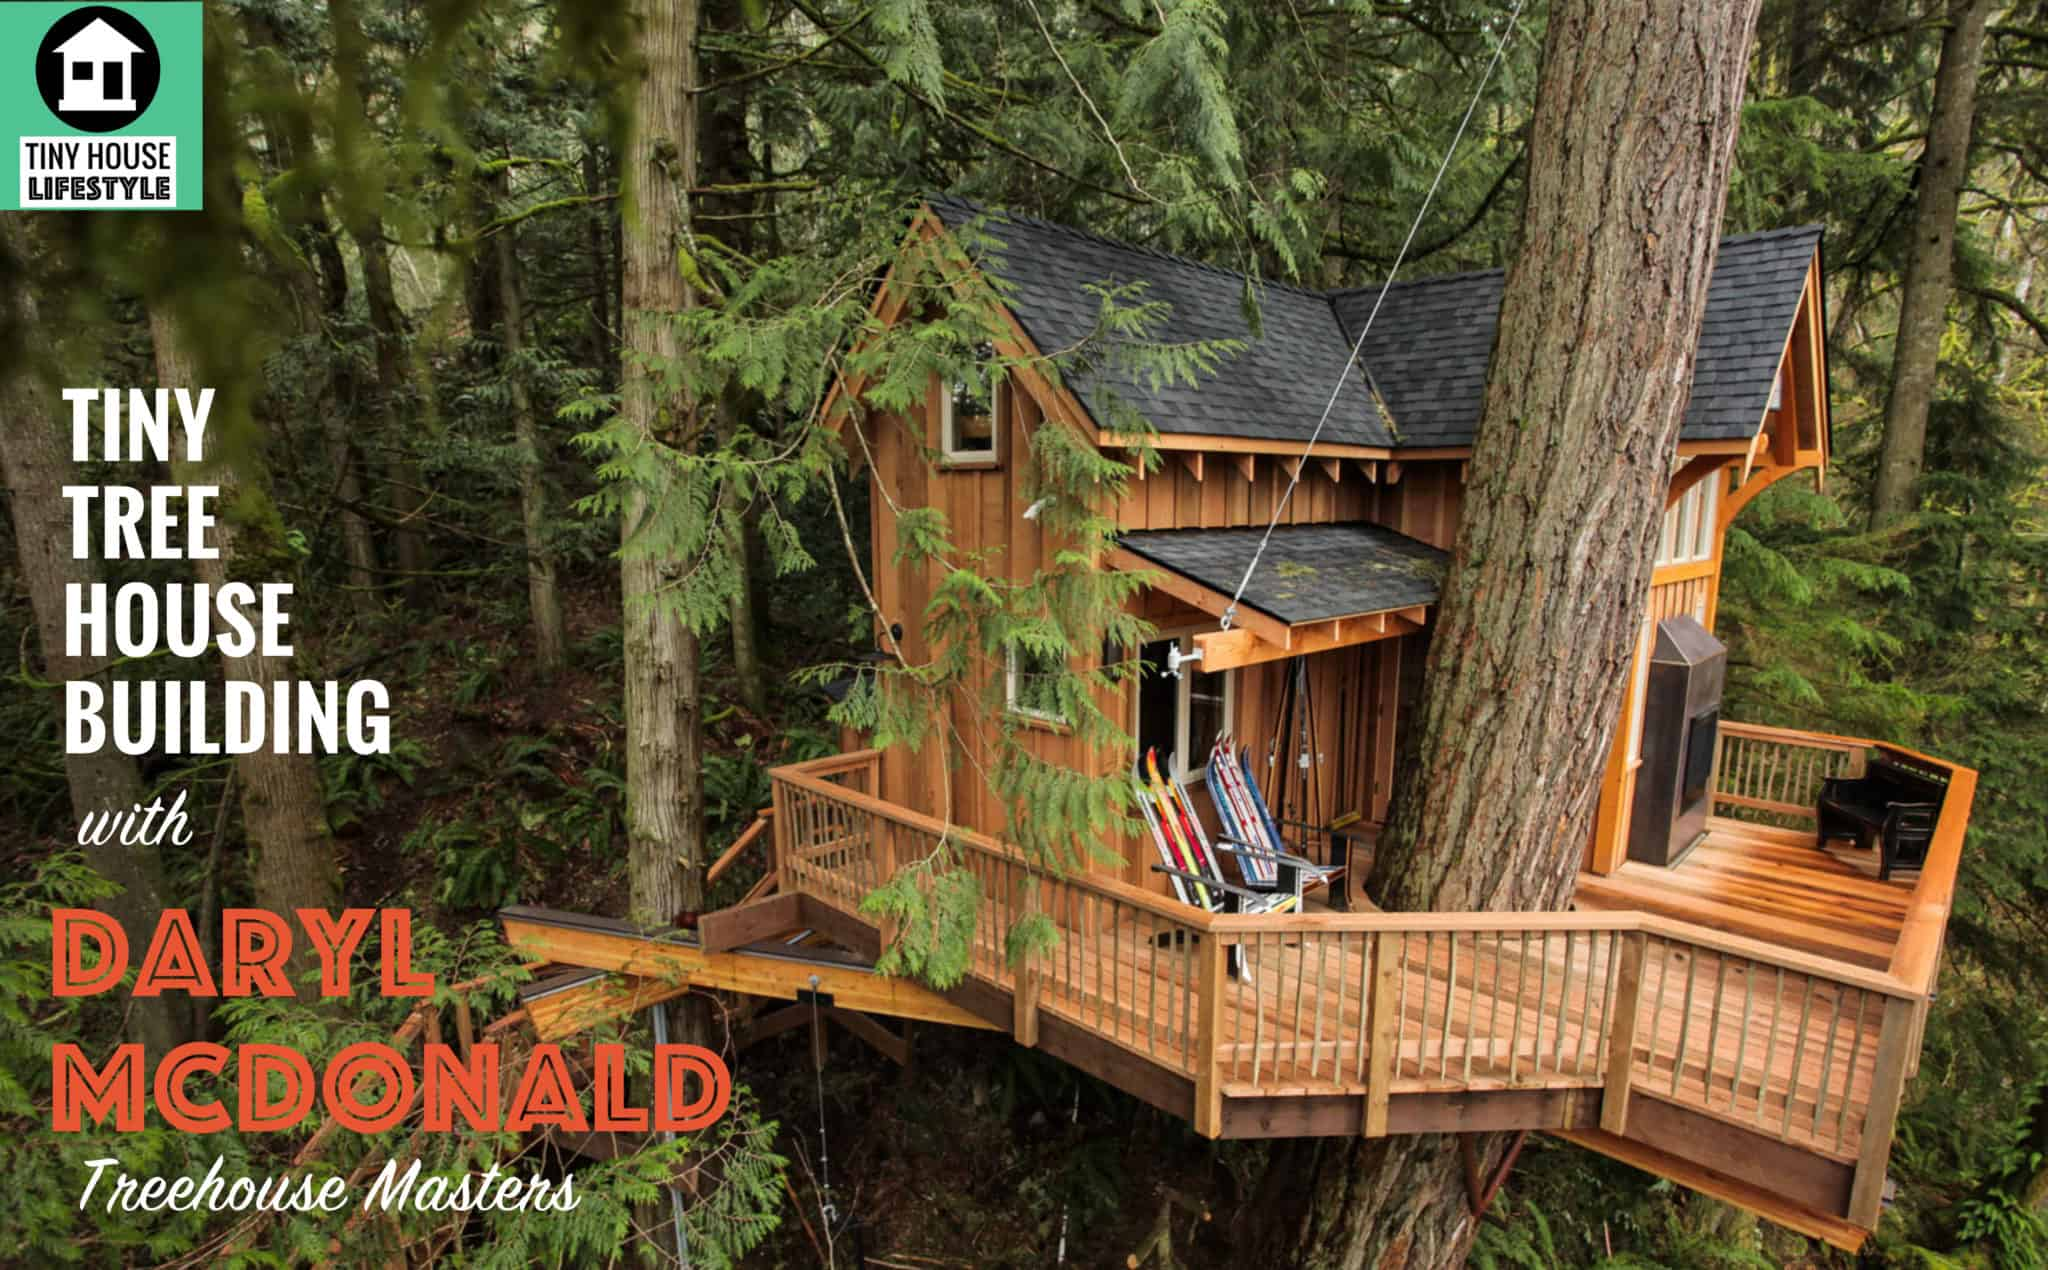 Build A Tiny House In The Trees With Treehouse Masters Daryl Mcdonald 036 The Tiny House